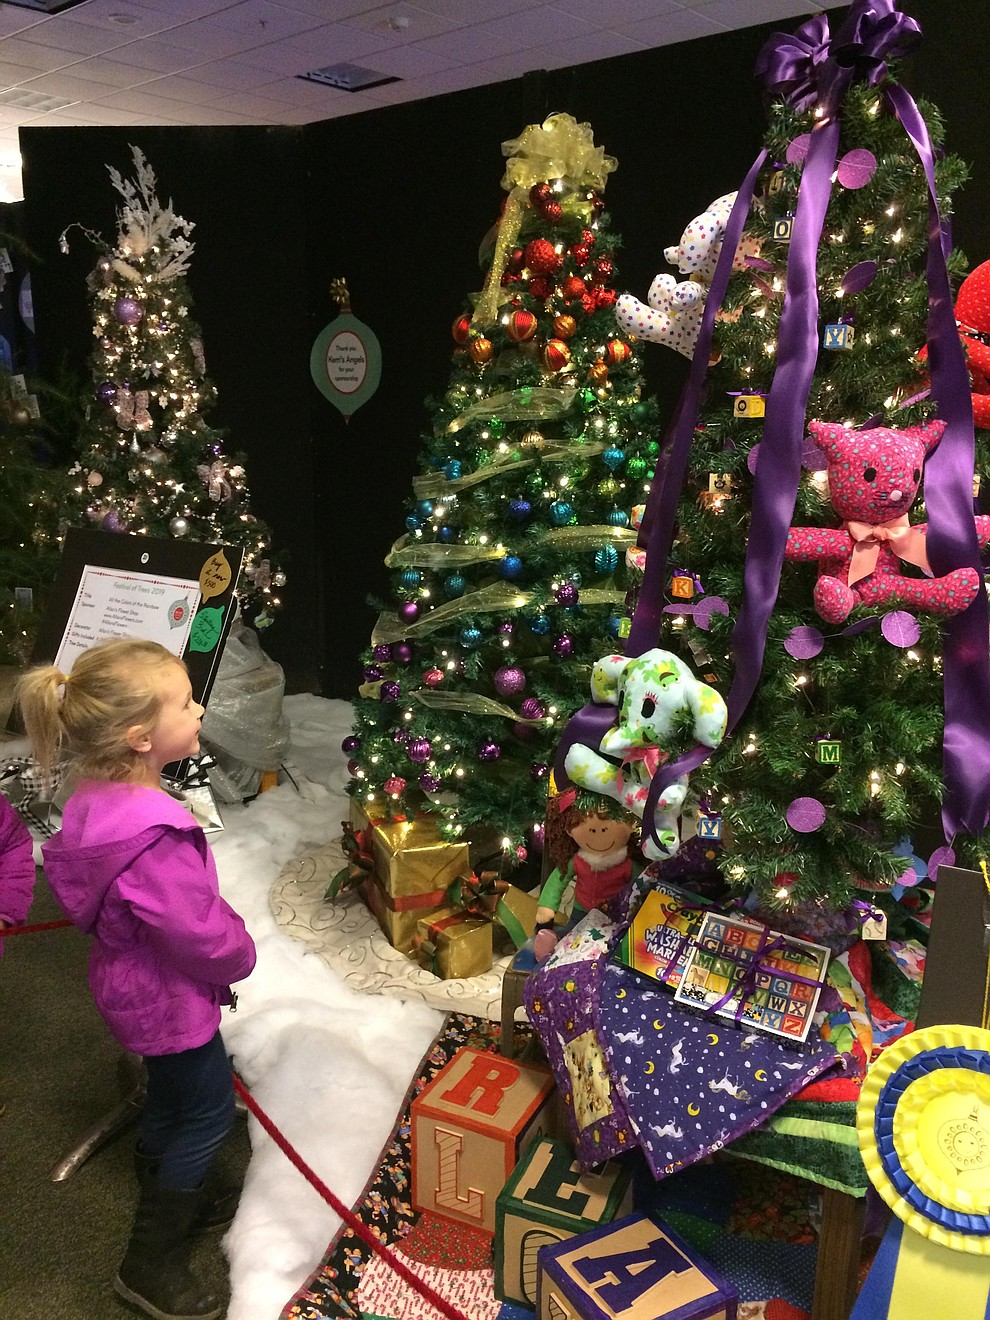 Sophia Owens looks at one of the decorated trees found at the Festival of Trees in Prescott Gateway Mall Saturday, Nov. 23. (Jason Wheeler/Courier)